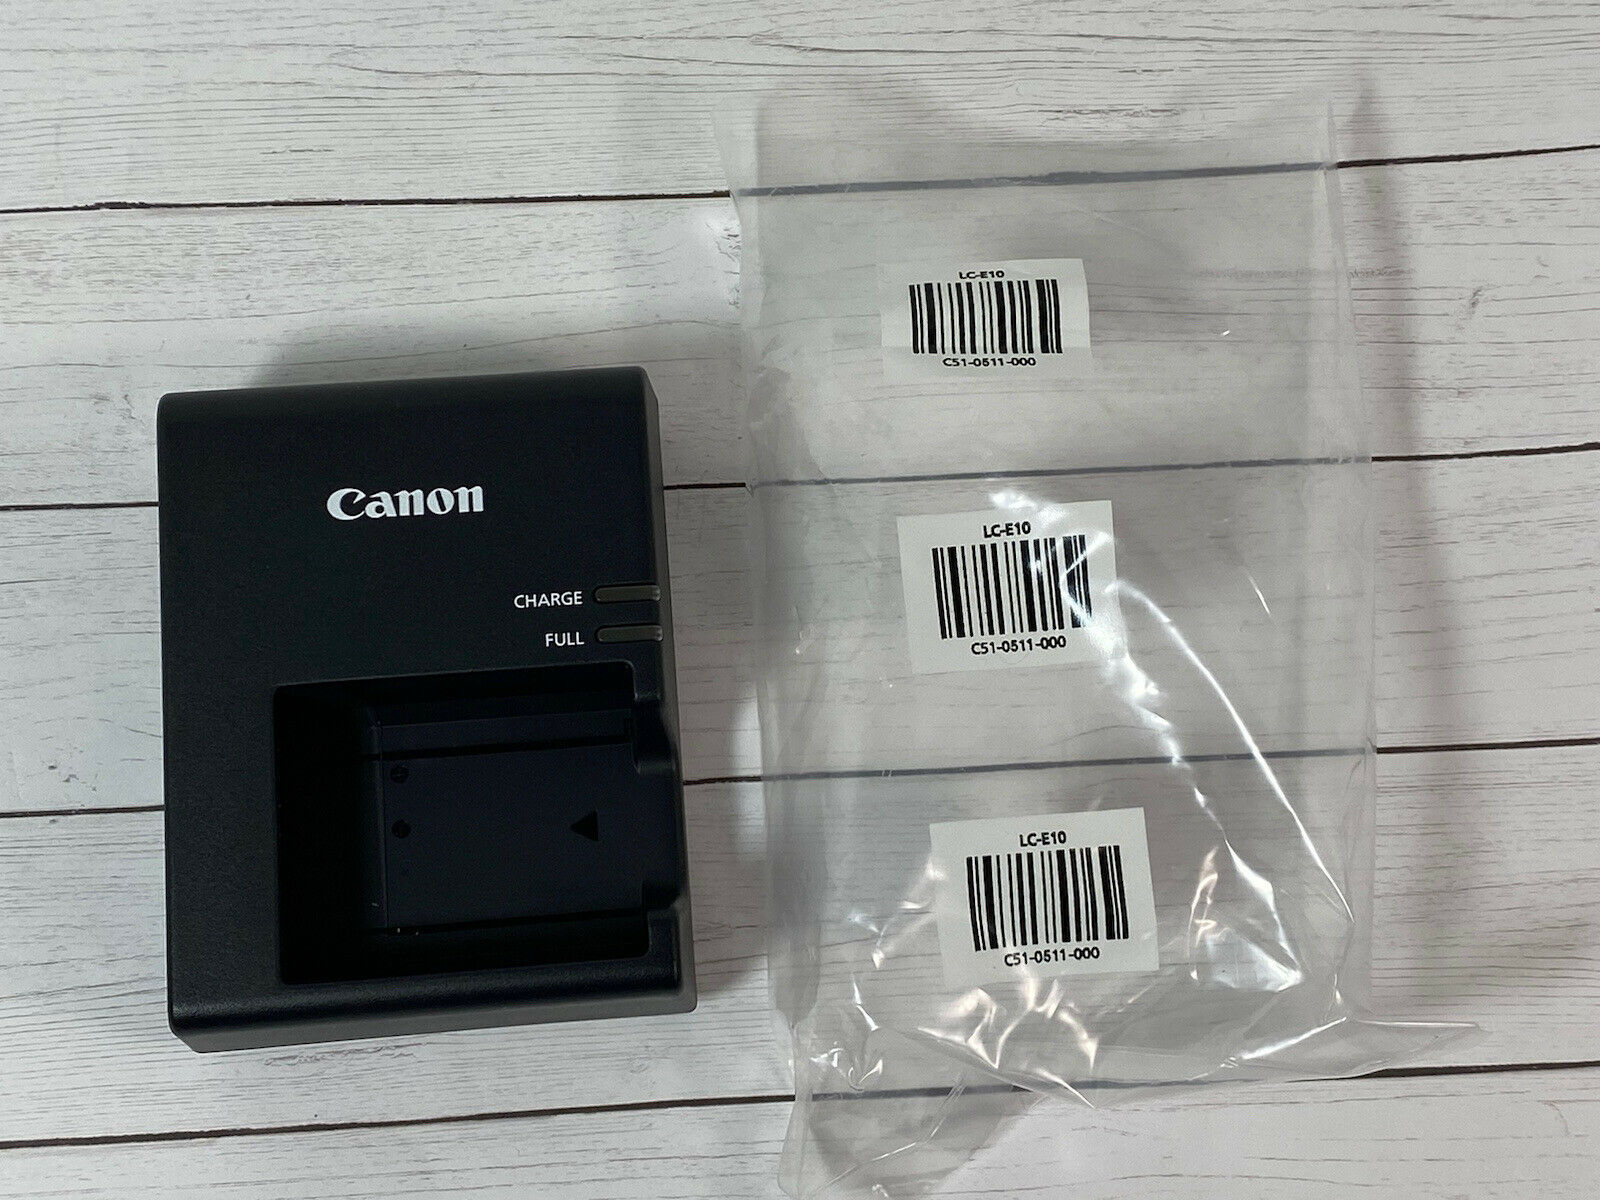 CANON Genuine LC-E10 Charger for LP-E10 Battery SLR T3 T5 T6 T7 Rebel